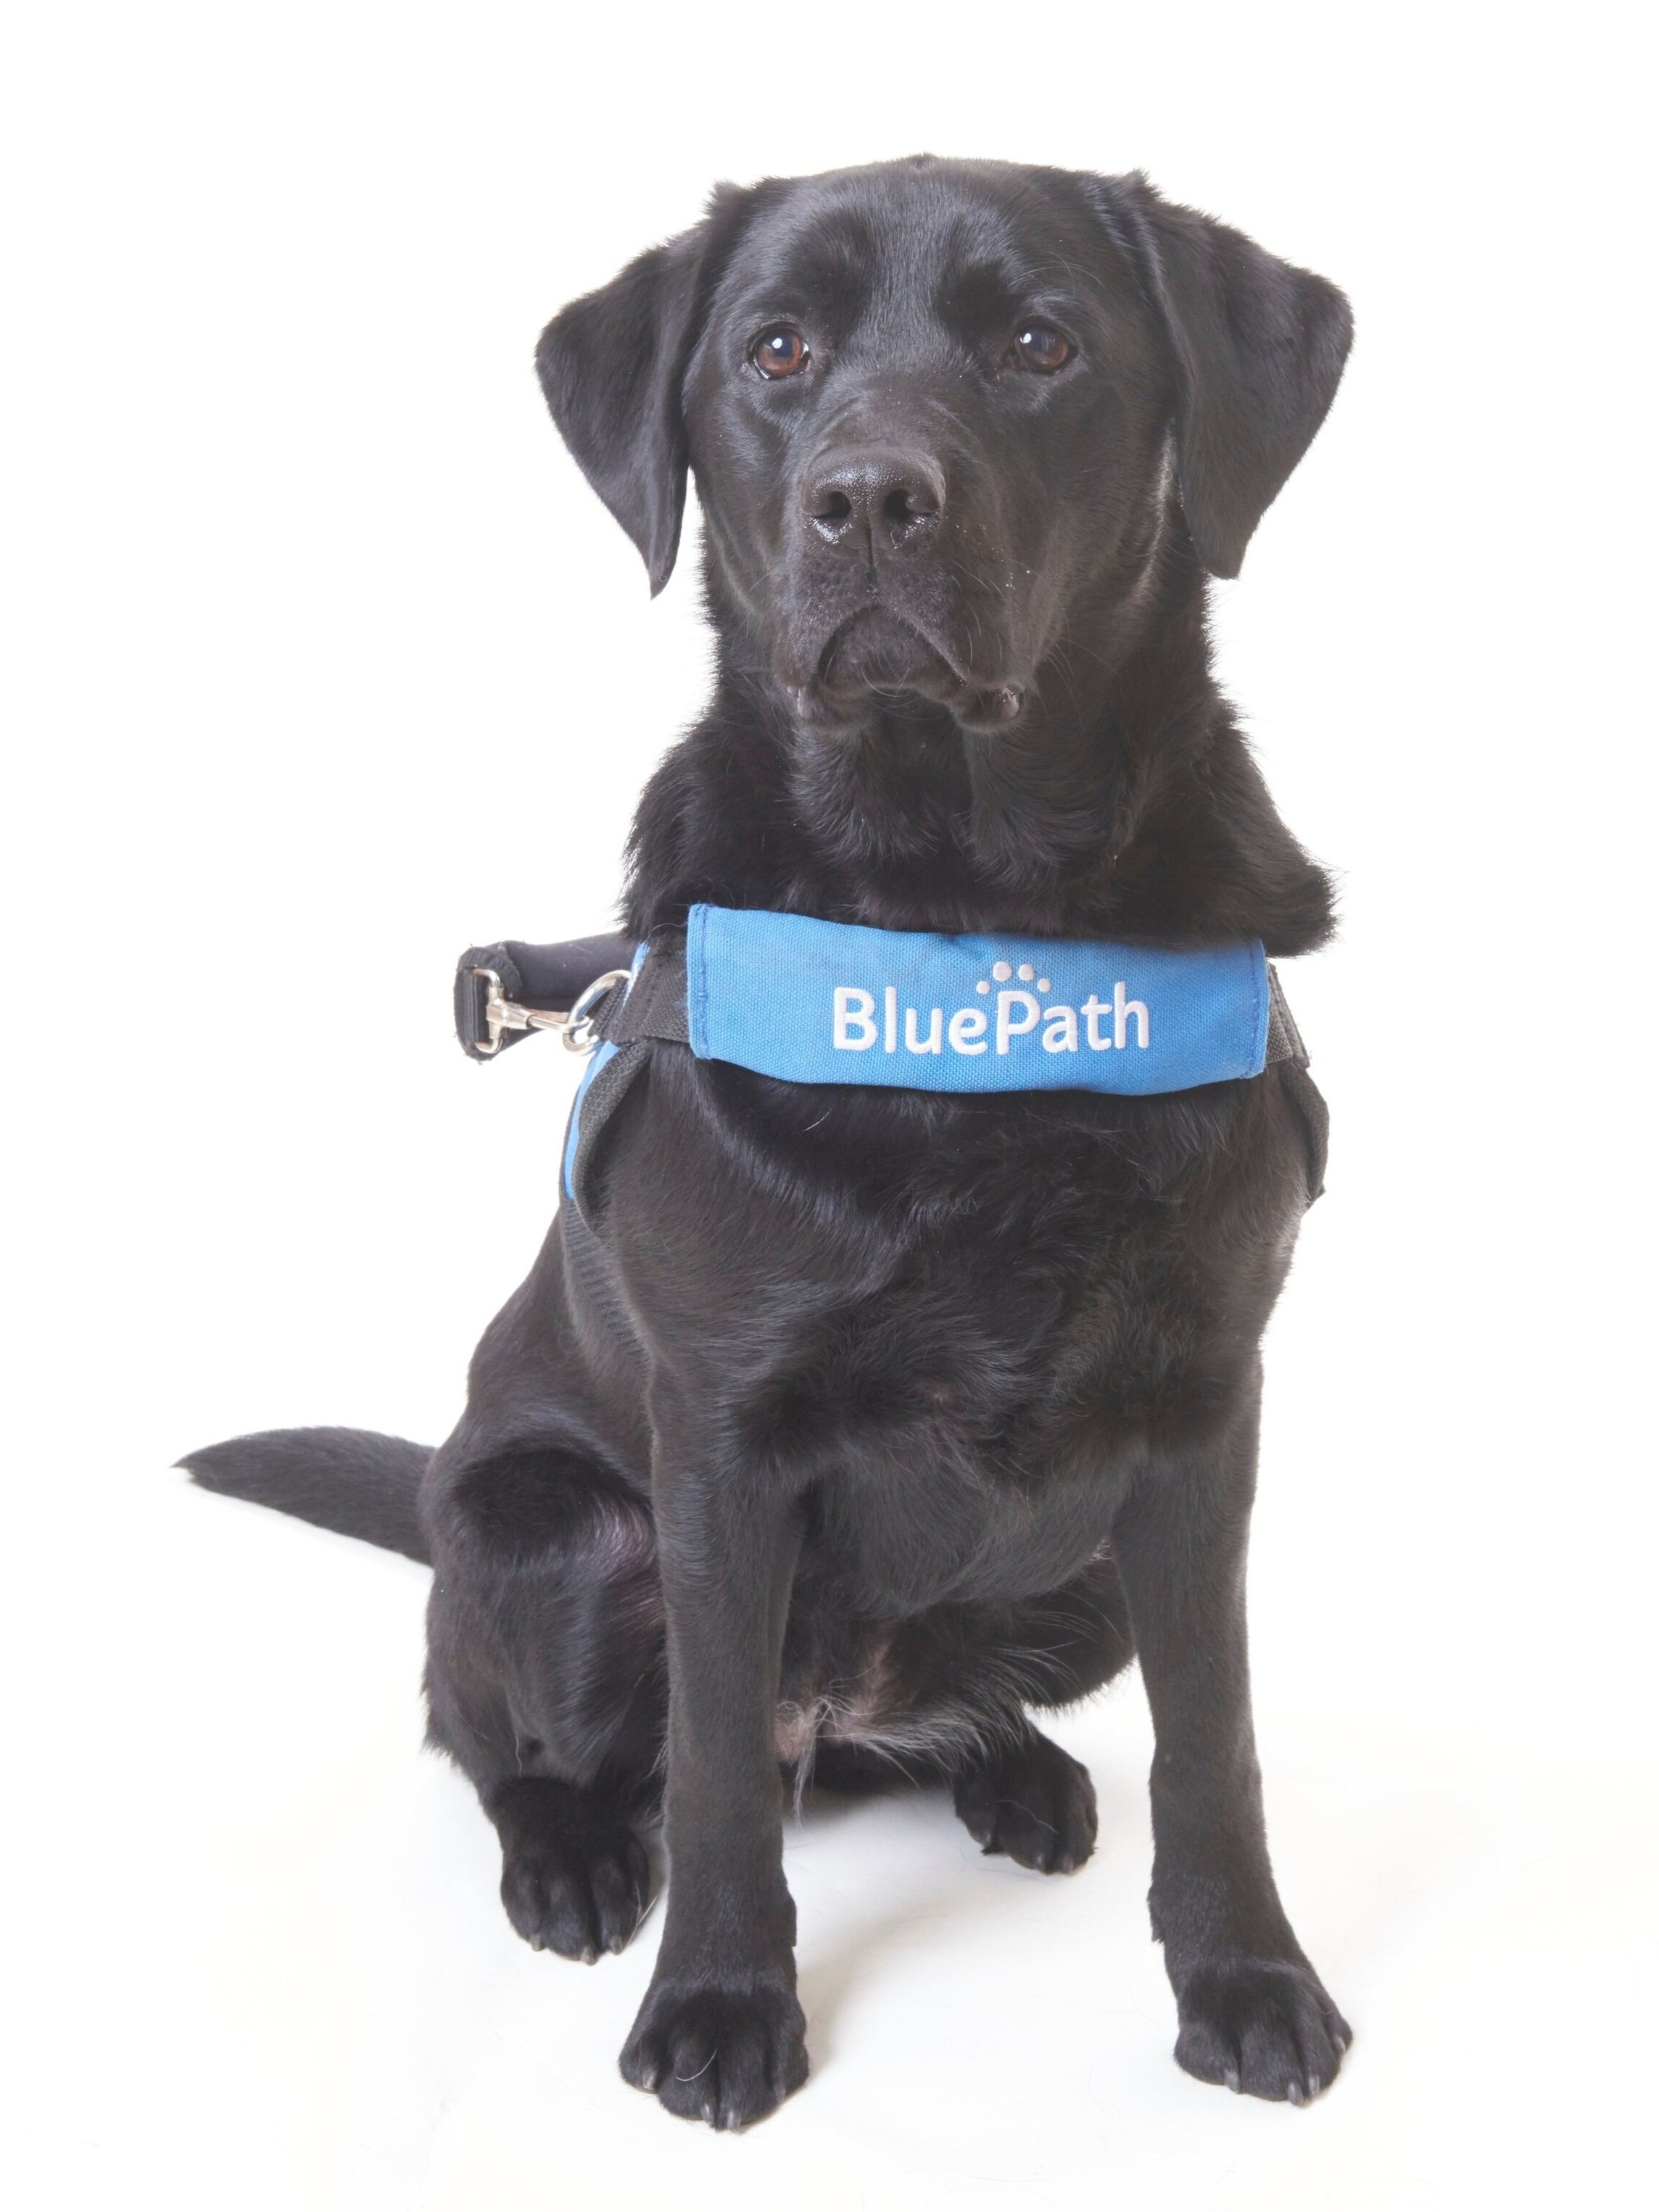 BluePath Tricia   Graduated with the Galatan family  Raised by Carolyn Anders  Fostered by the Armstrong family  Provided by Guide Dog Foundation